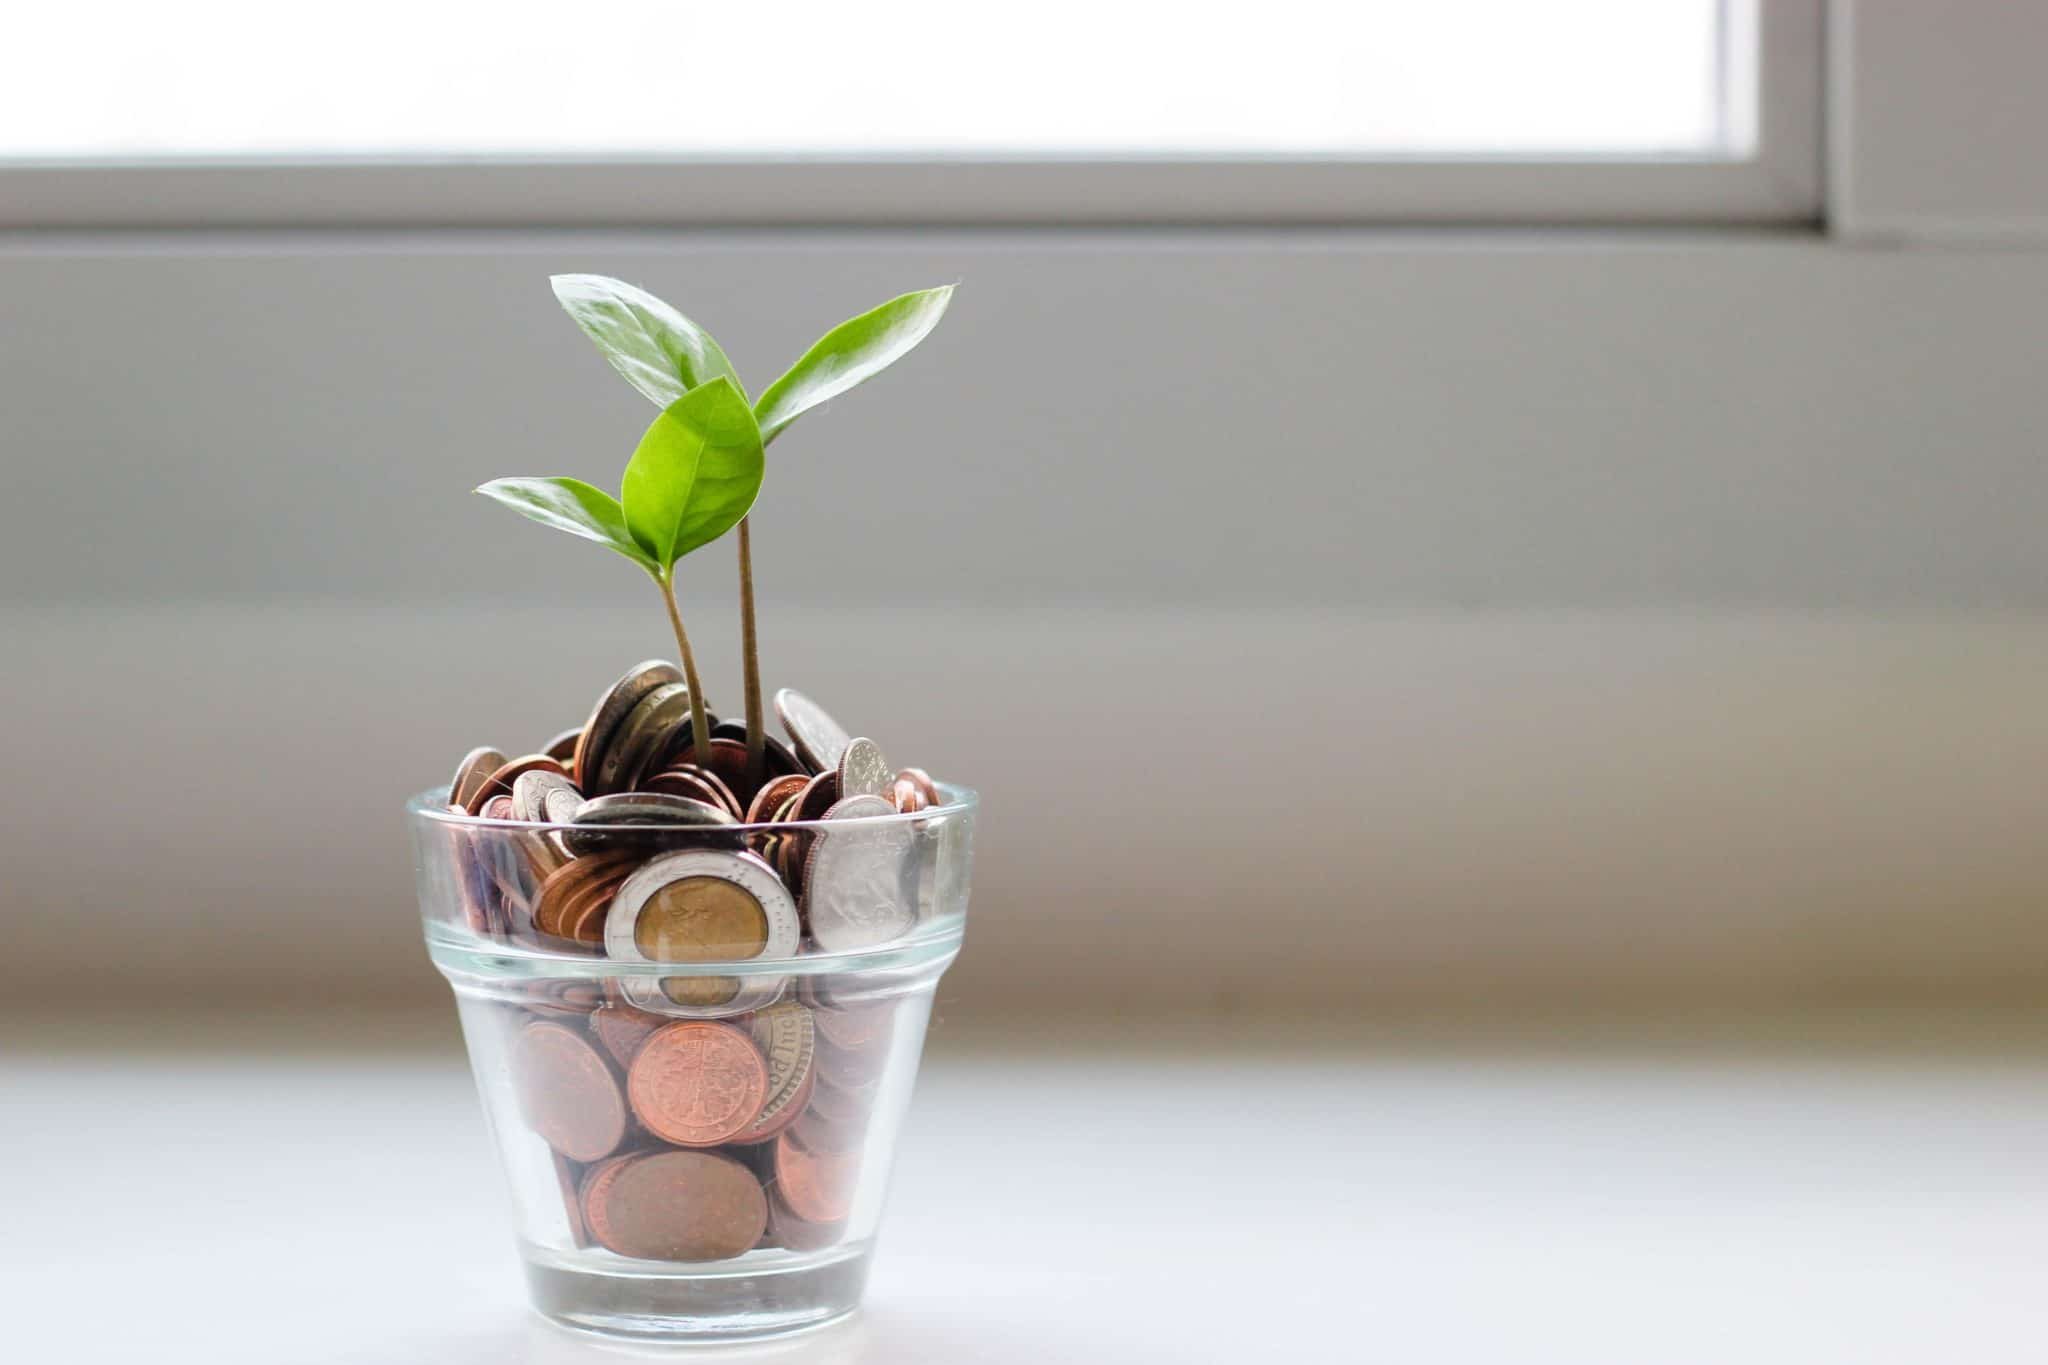 How To Grow From Government Grant - Plant Growing From Coins